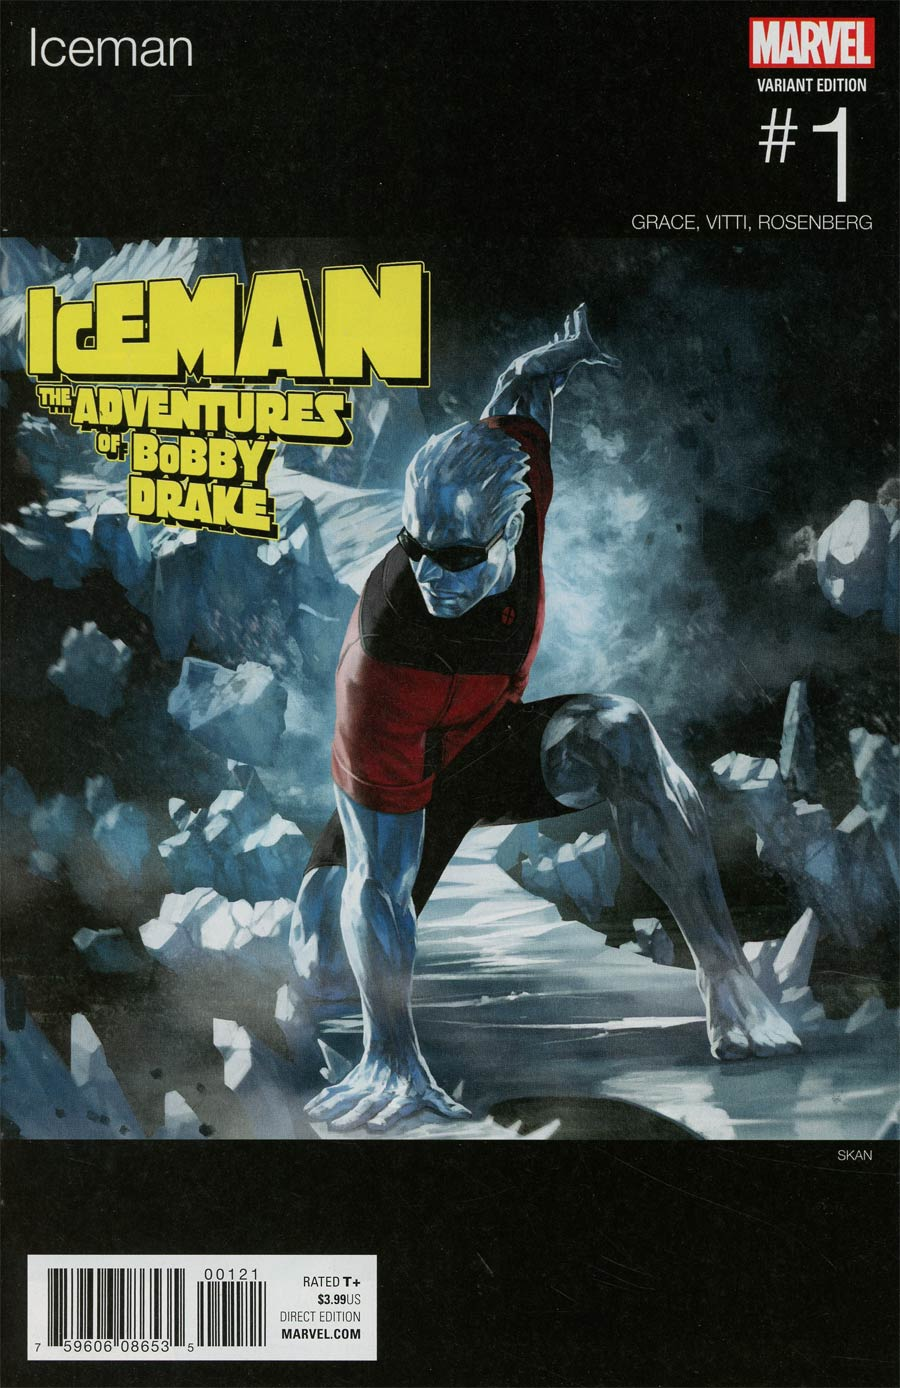 Iceman Vol 3 #1 Cover B Variant Skan Marvel Hip-Hop Cover